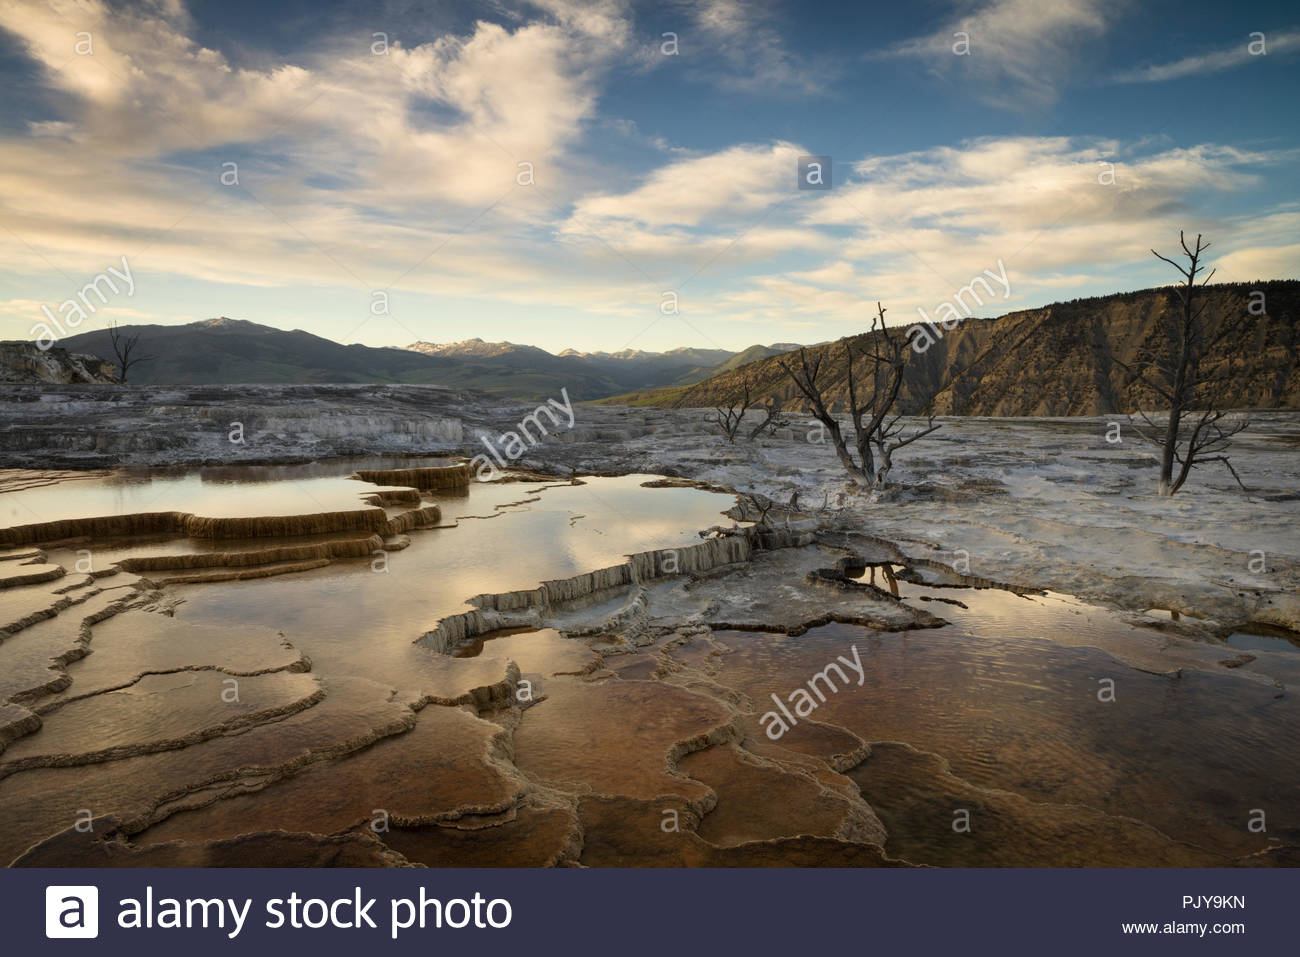 Mammoth Hot Springs at Sunset, Yellowstone National Park, Wyoming - Stock Image